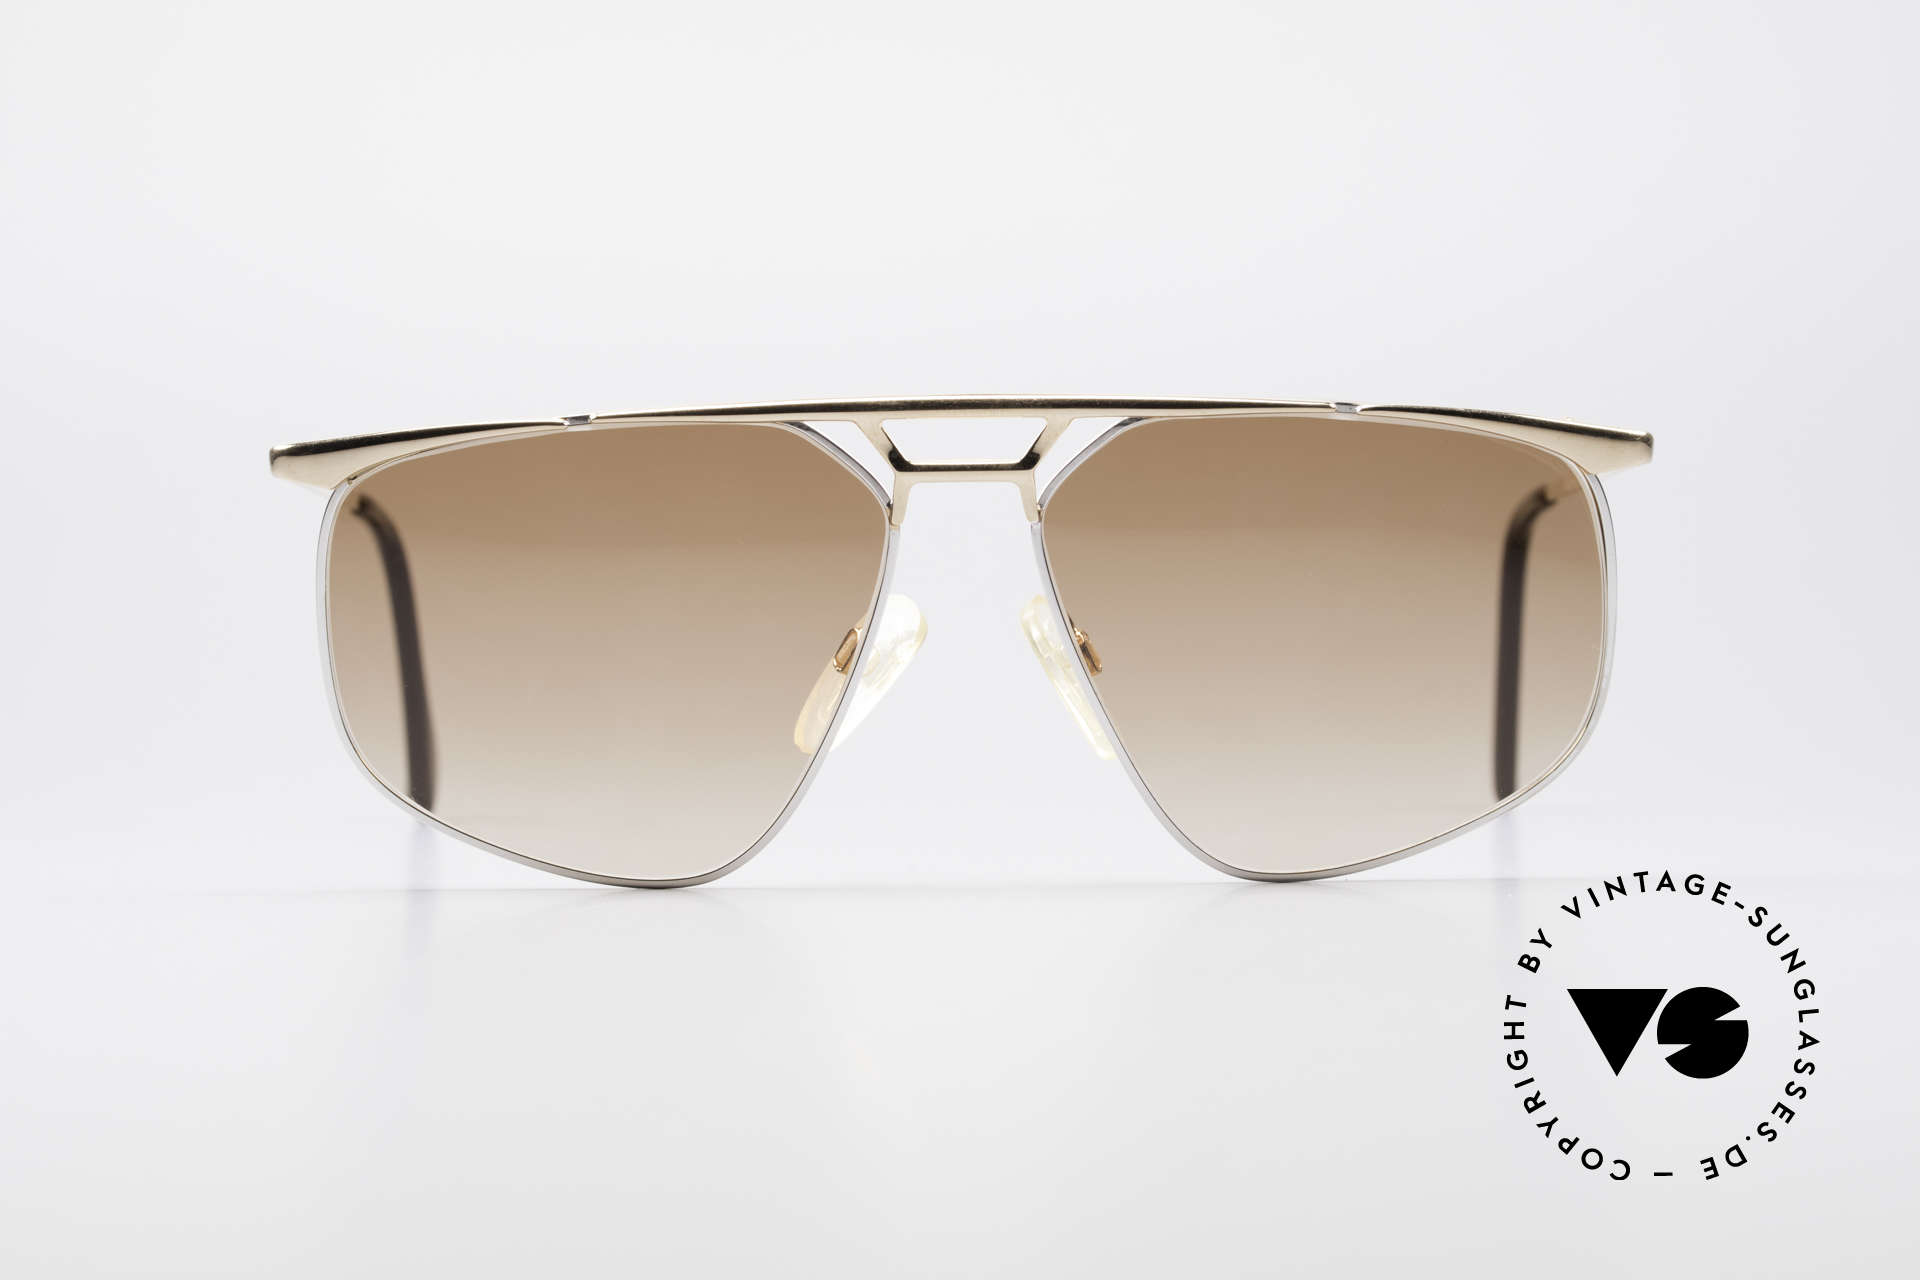 Zollitsch Cadre 9 18kt Gold Plated Sunglasses, precious, oversized frame for men (18kt gold-plated), Made for Men